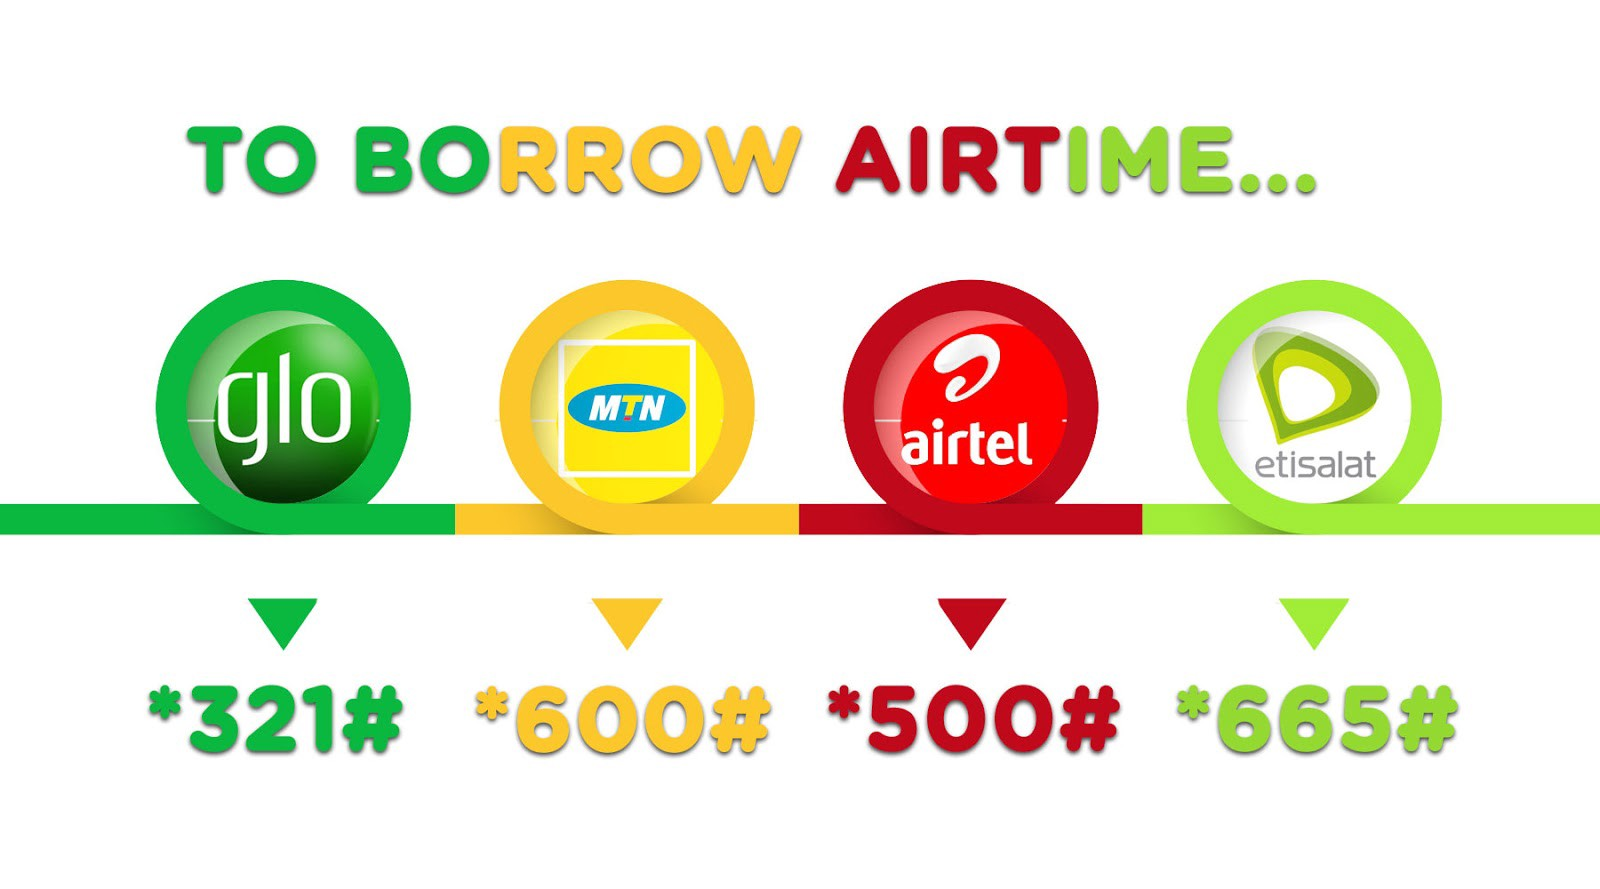 Mettsalat How To Borrow Airtime From Mtn Glo Etisalat And Airtel